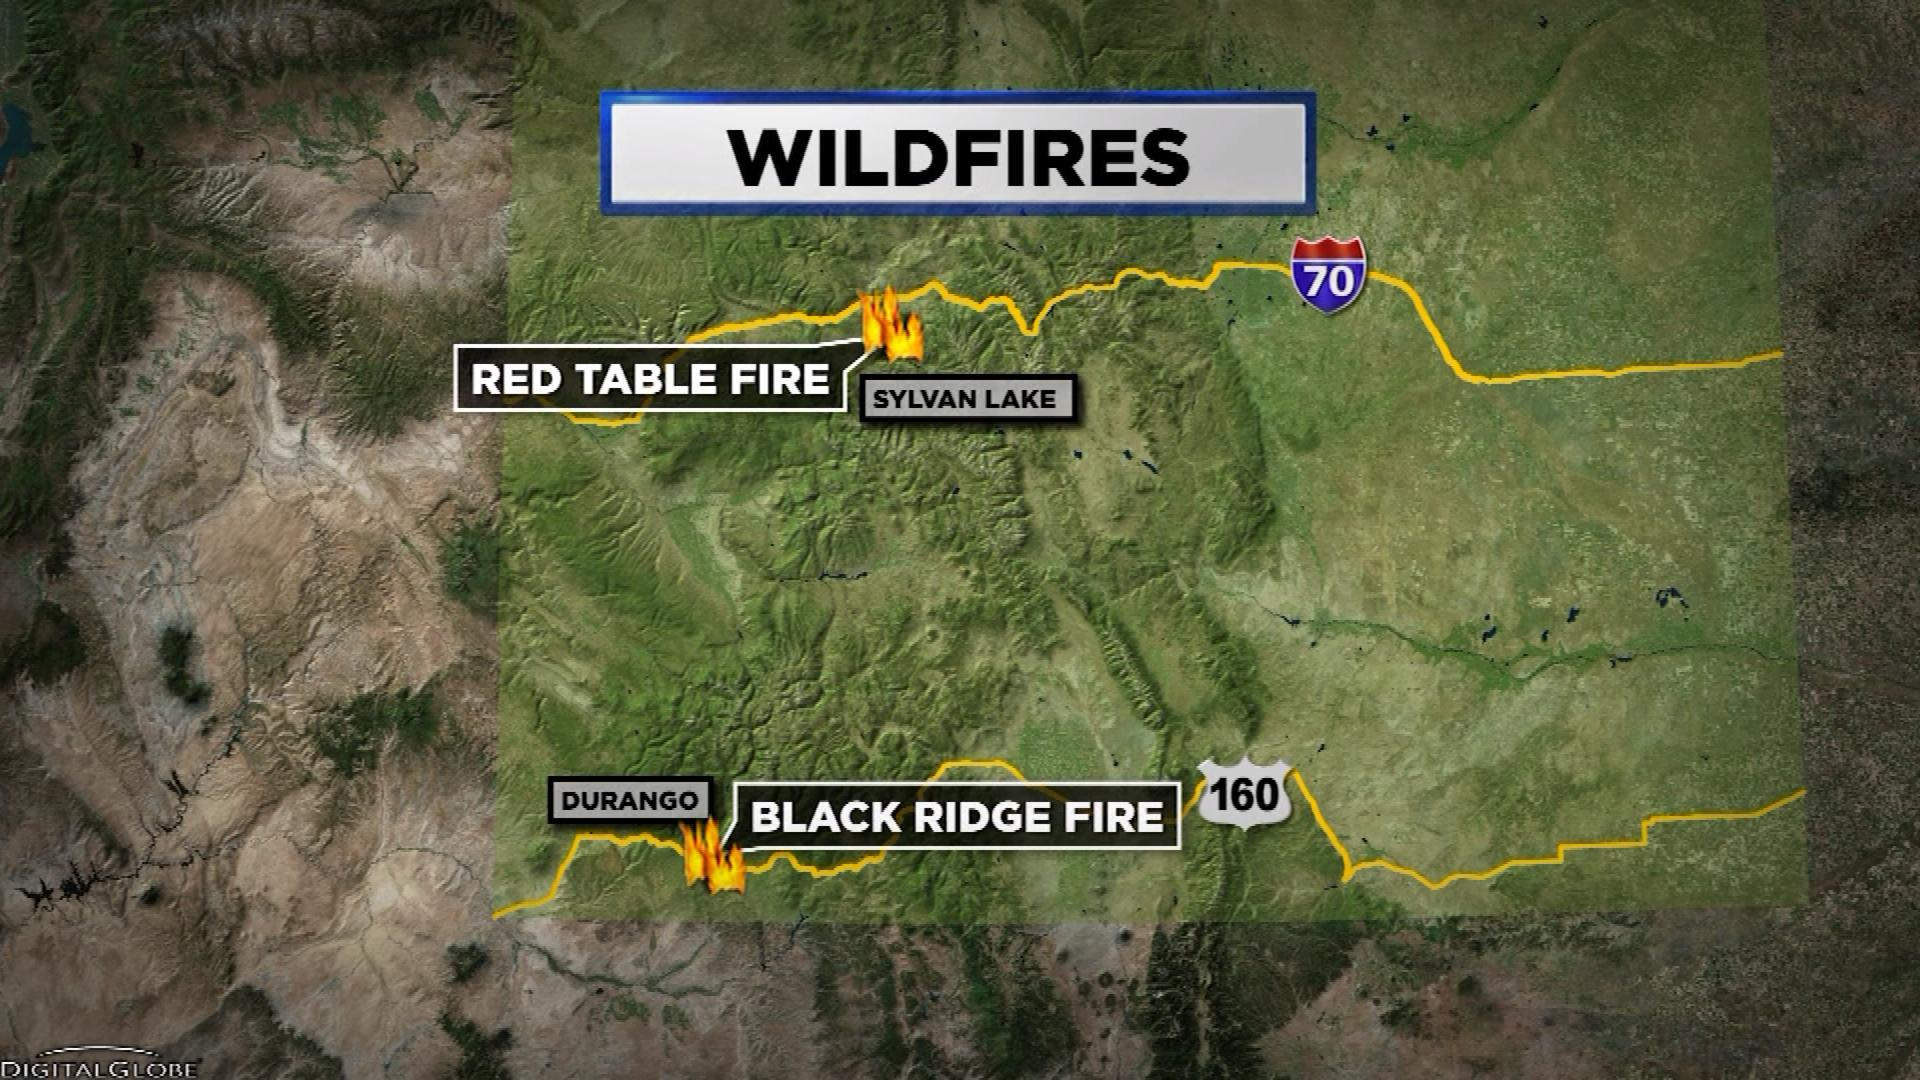 Red Table Fire, Black Ridge Fire